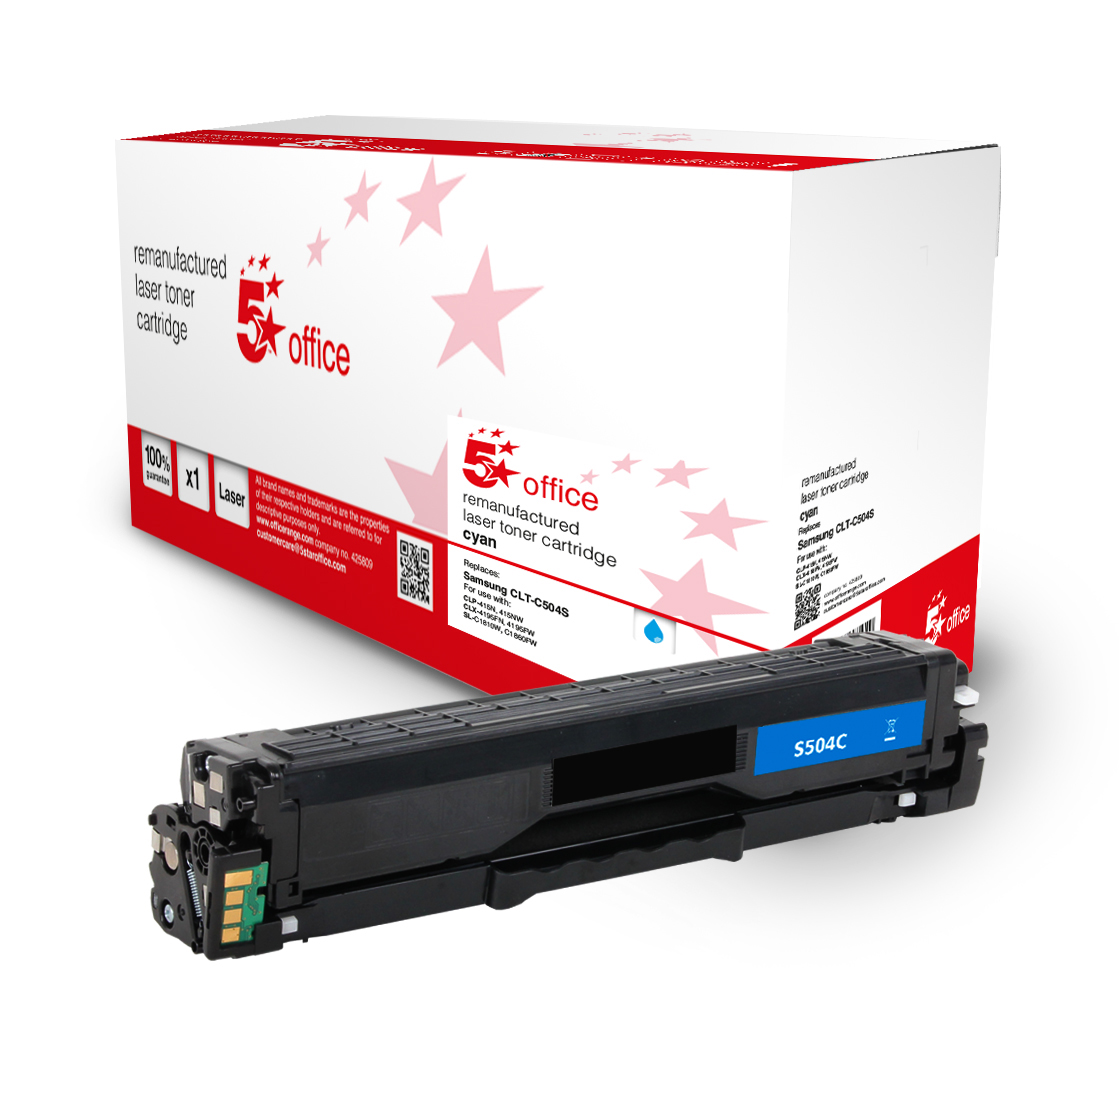 5 Star Office Remanufactured Toner Cartridge Page Life Cyan 1800pp Samsung SU025A Alternative